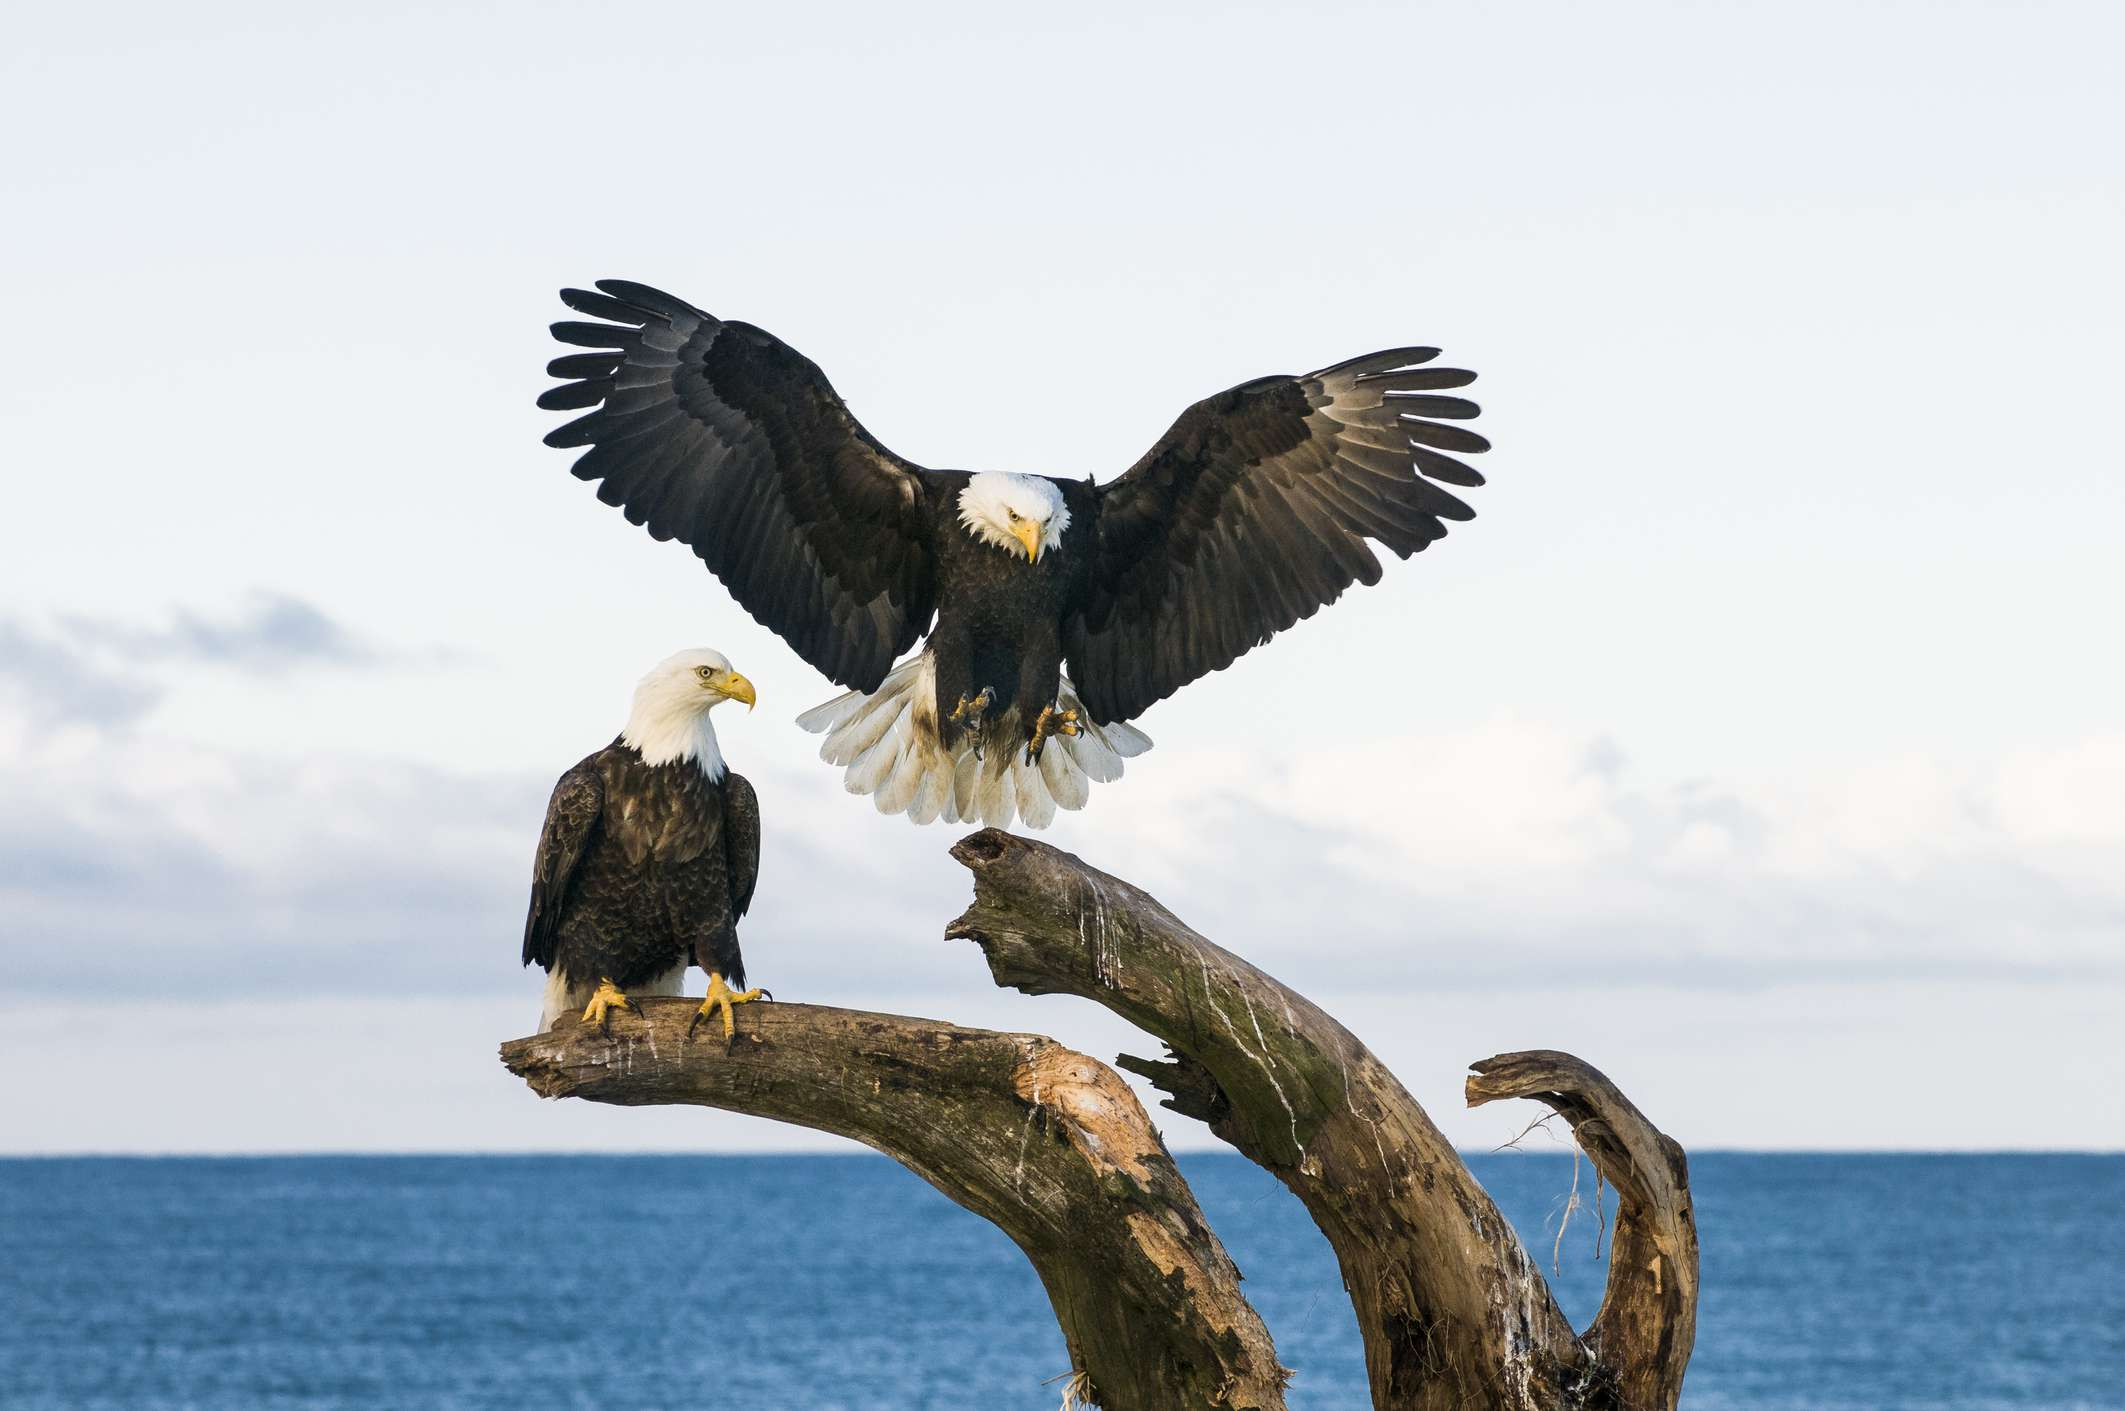 Two American bald eagles